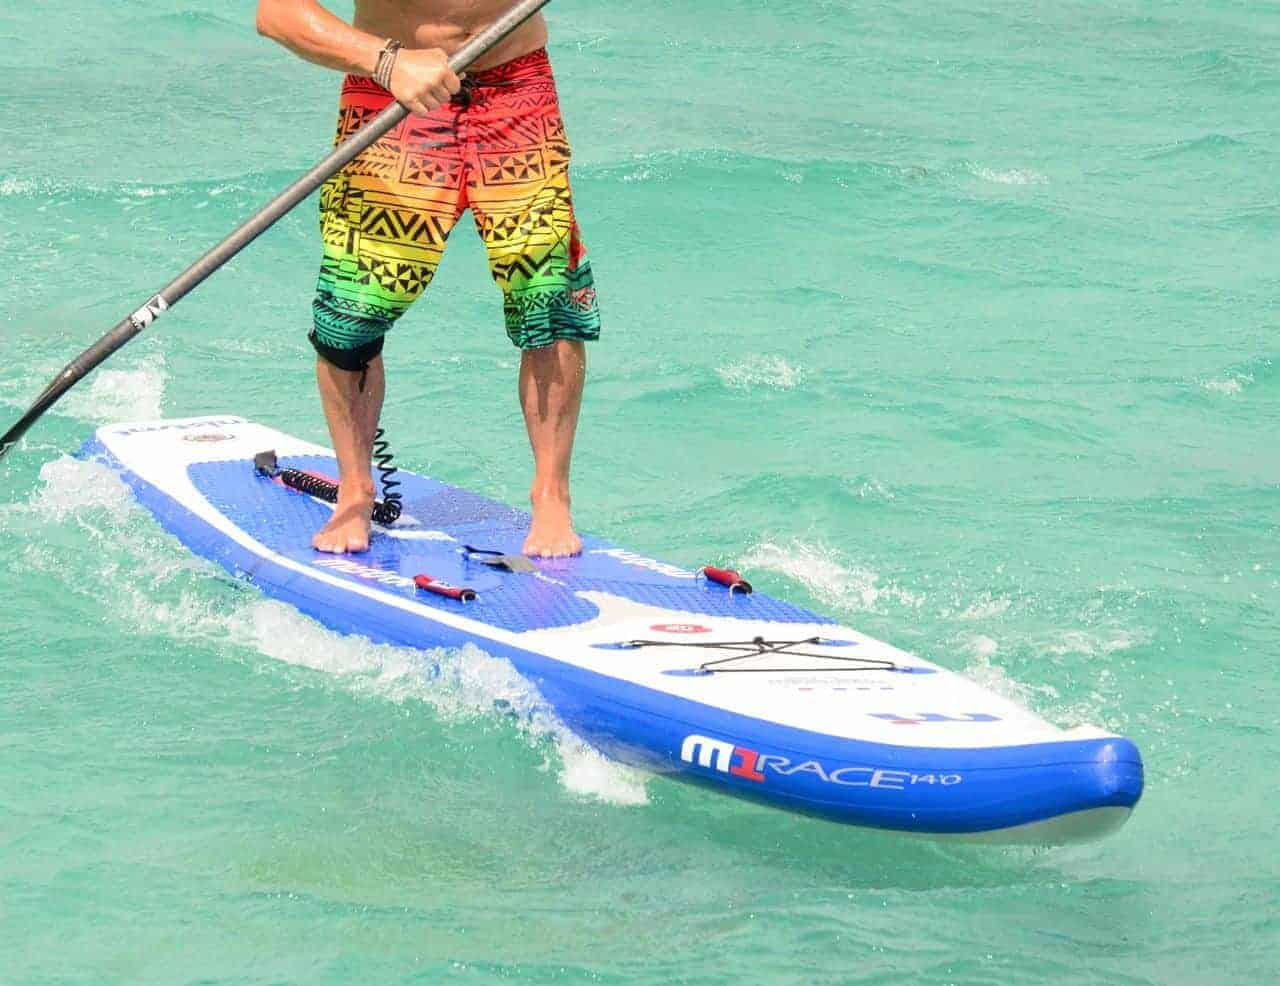 Steve West chooses Mistral inflatable sup isup paddleboards as his